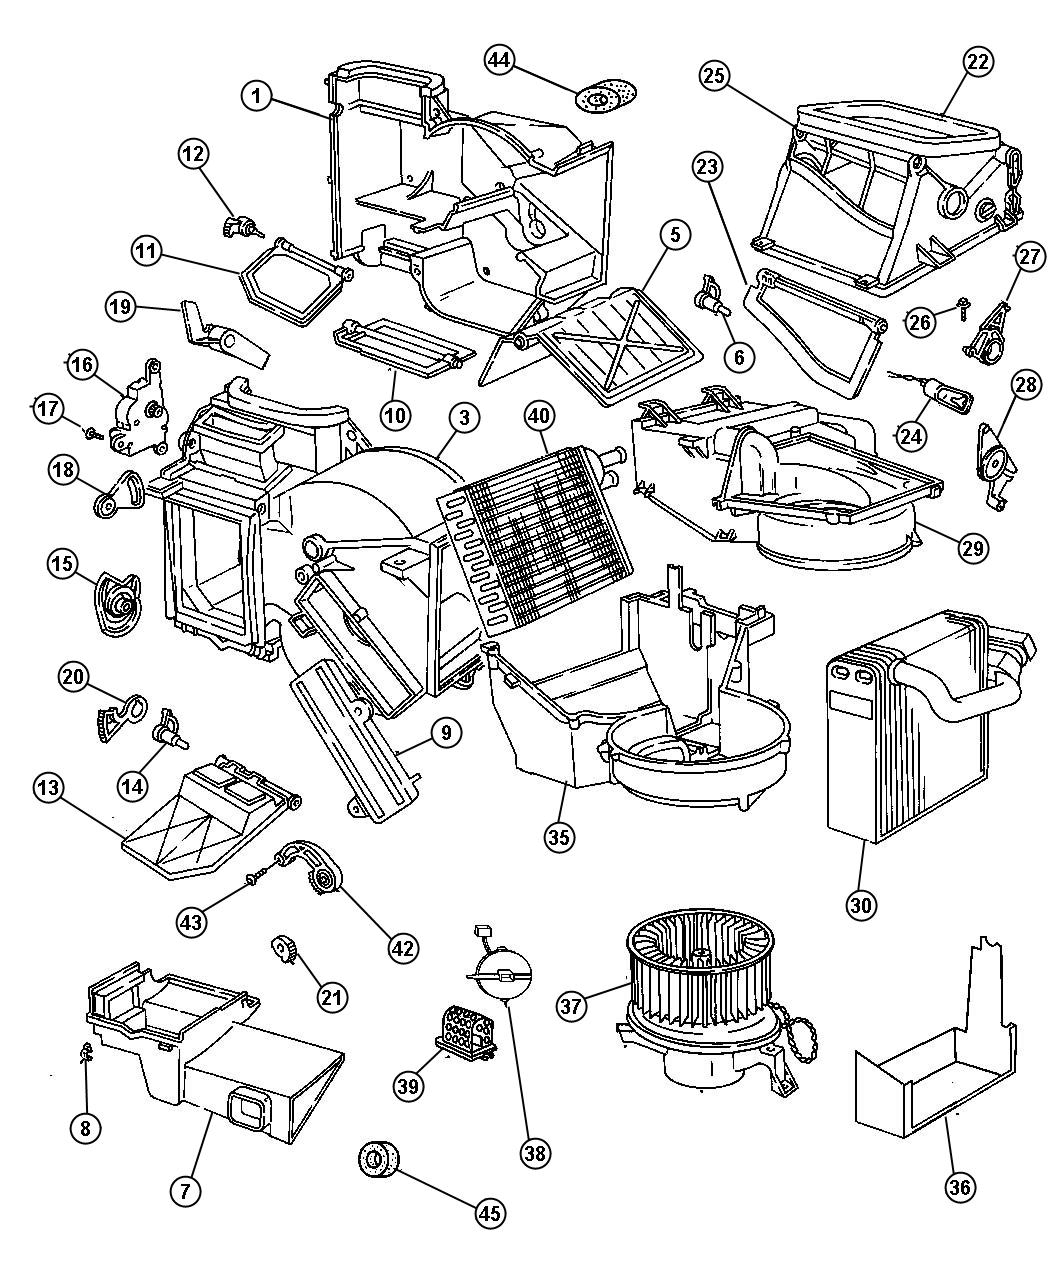 97 Plymouth Breeze Engine Diagram. Plymouth. Auto Wiring